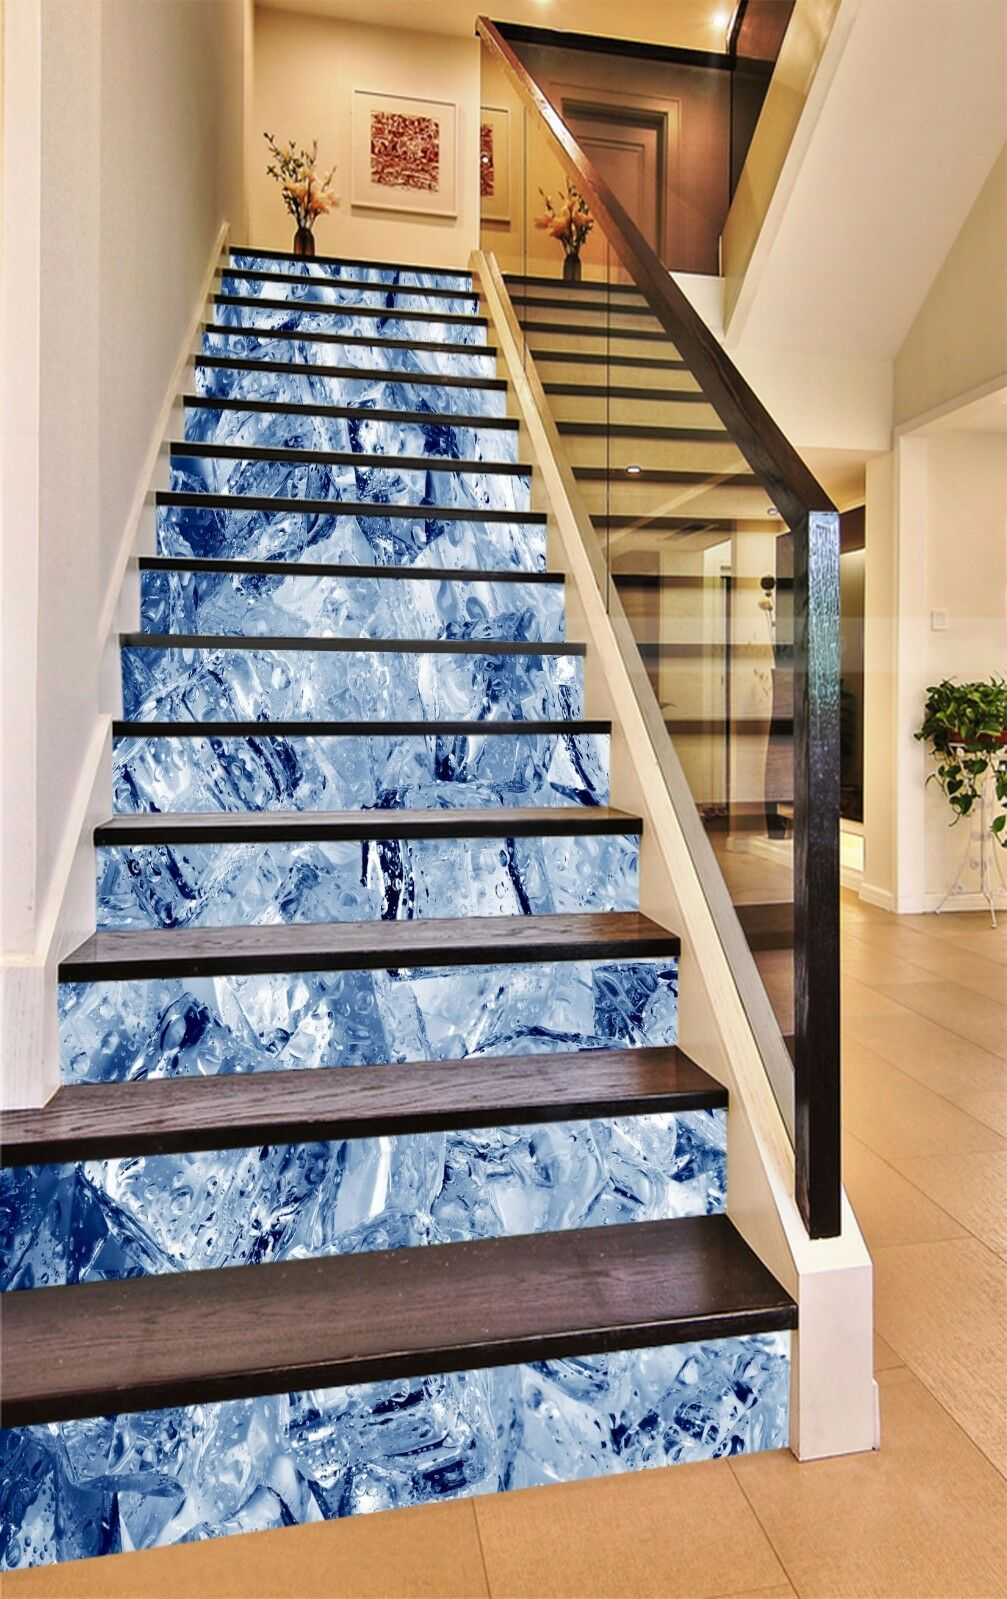 3D Cool Ice 765 Stair Risers Decoration Photo Mural Vinyl Decal Wallpaper AU